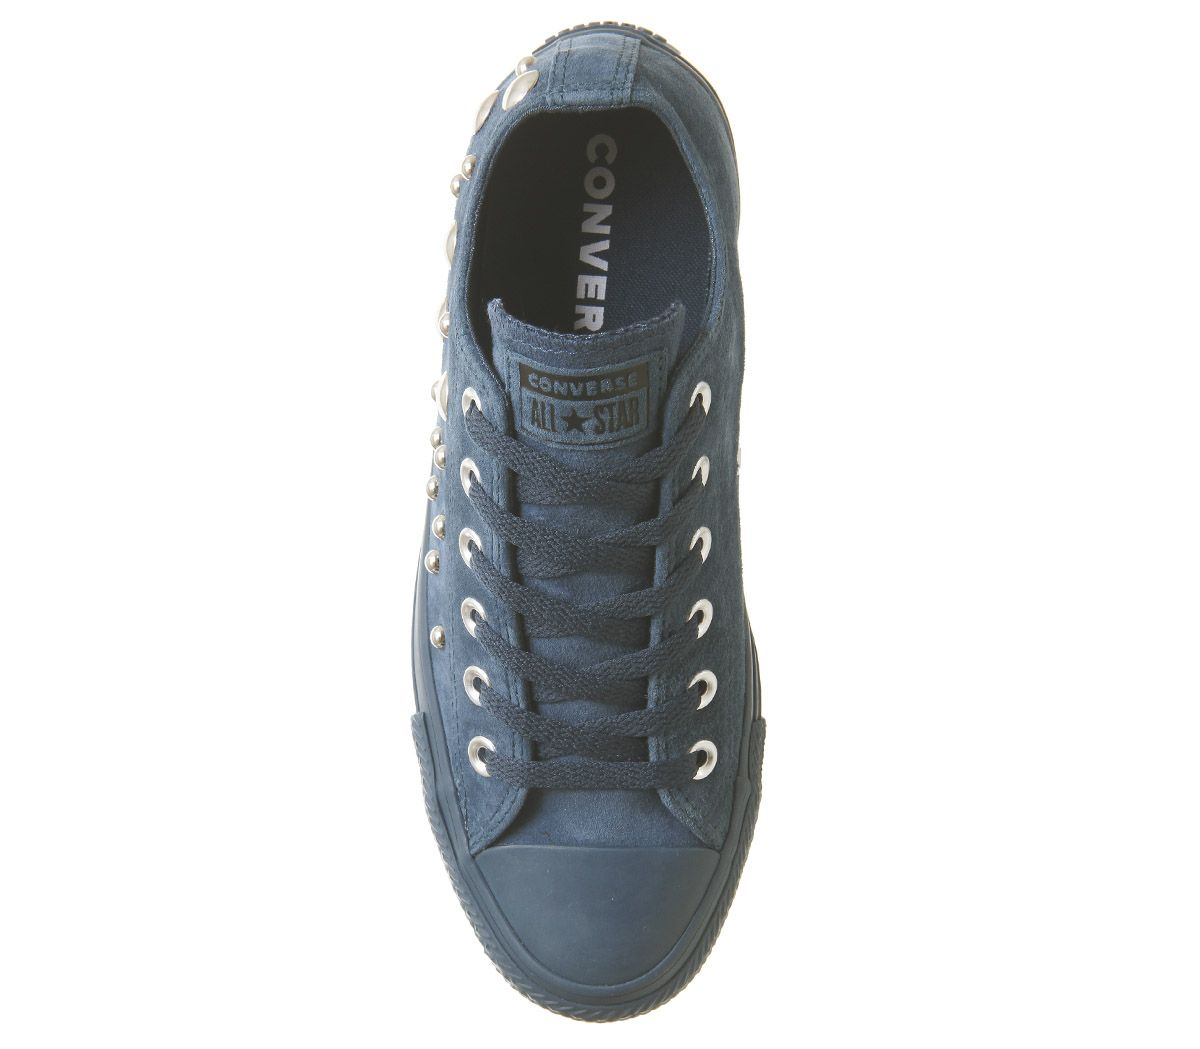 9272a2d5320e1 Womens Converse All Star Low Leather Trainers Blue Fir Multi Studio ...